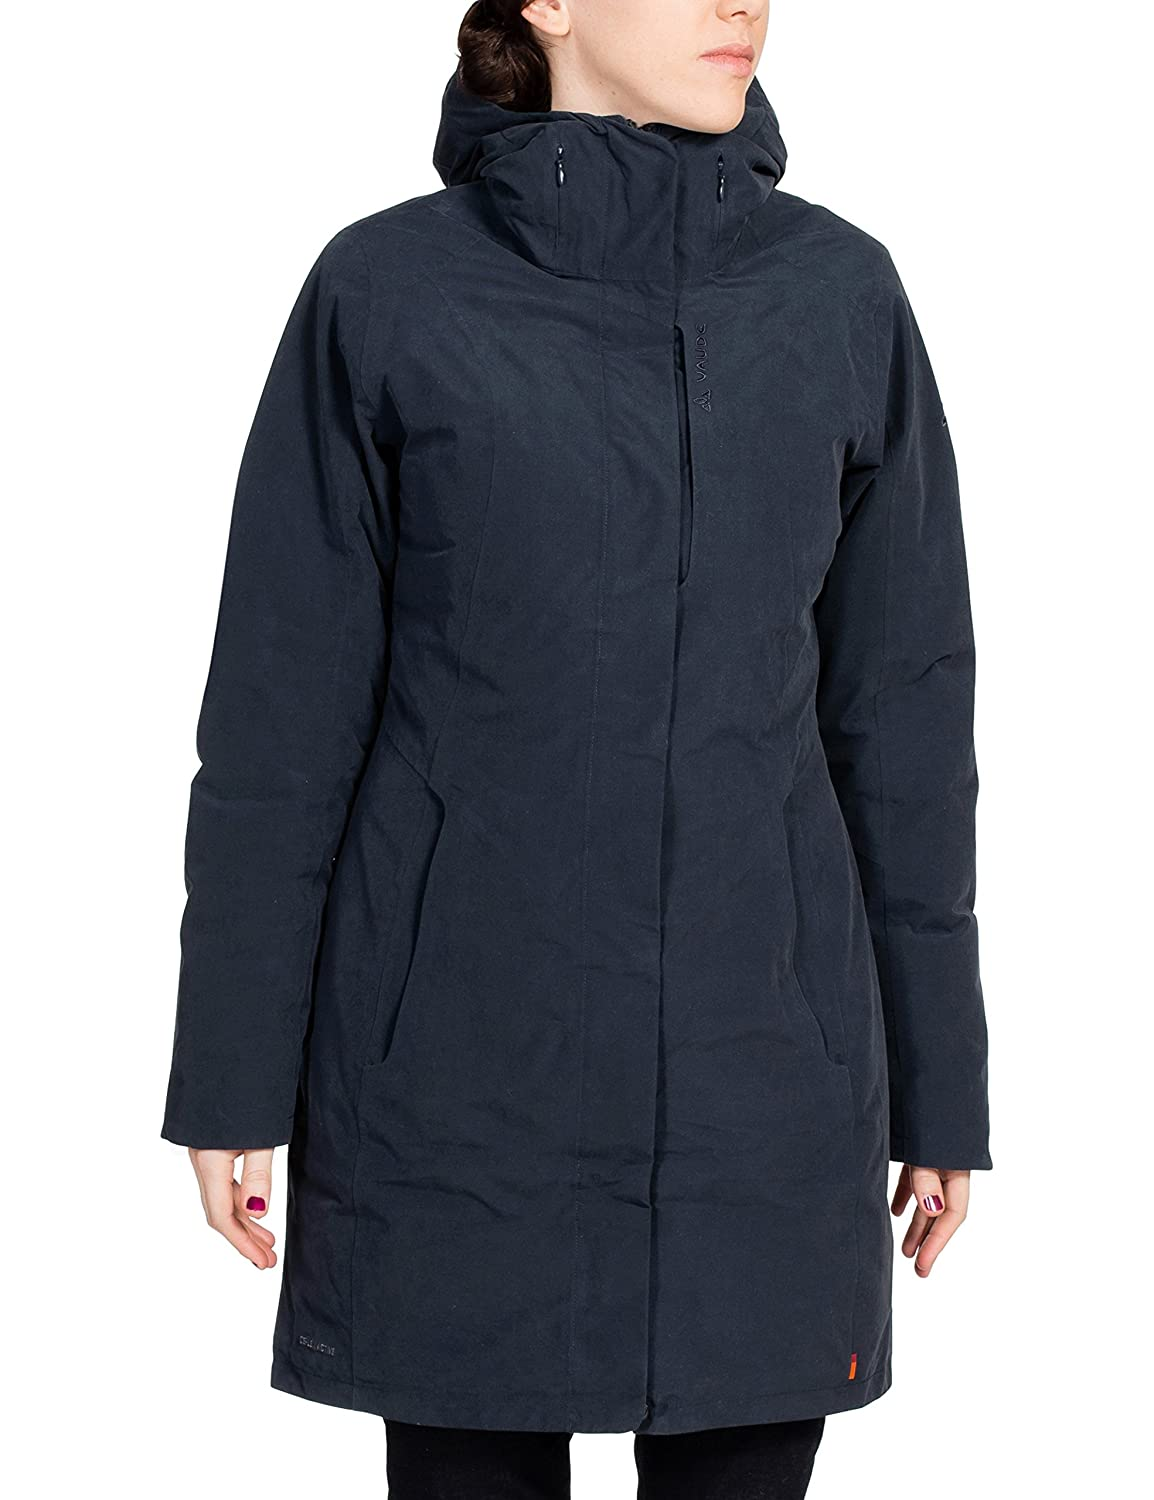 VAUDE Damen Doppeljacke Annecy 3-in-1 Coat